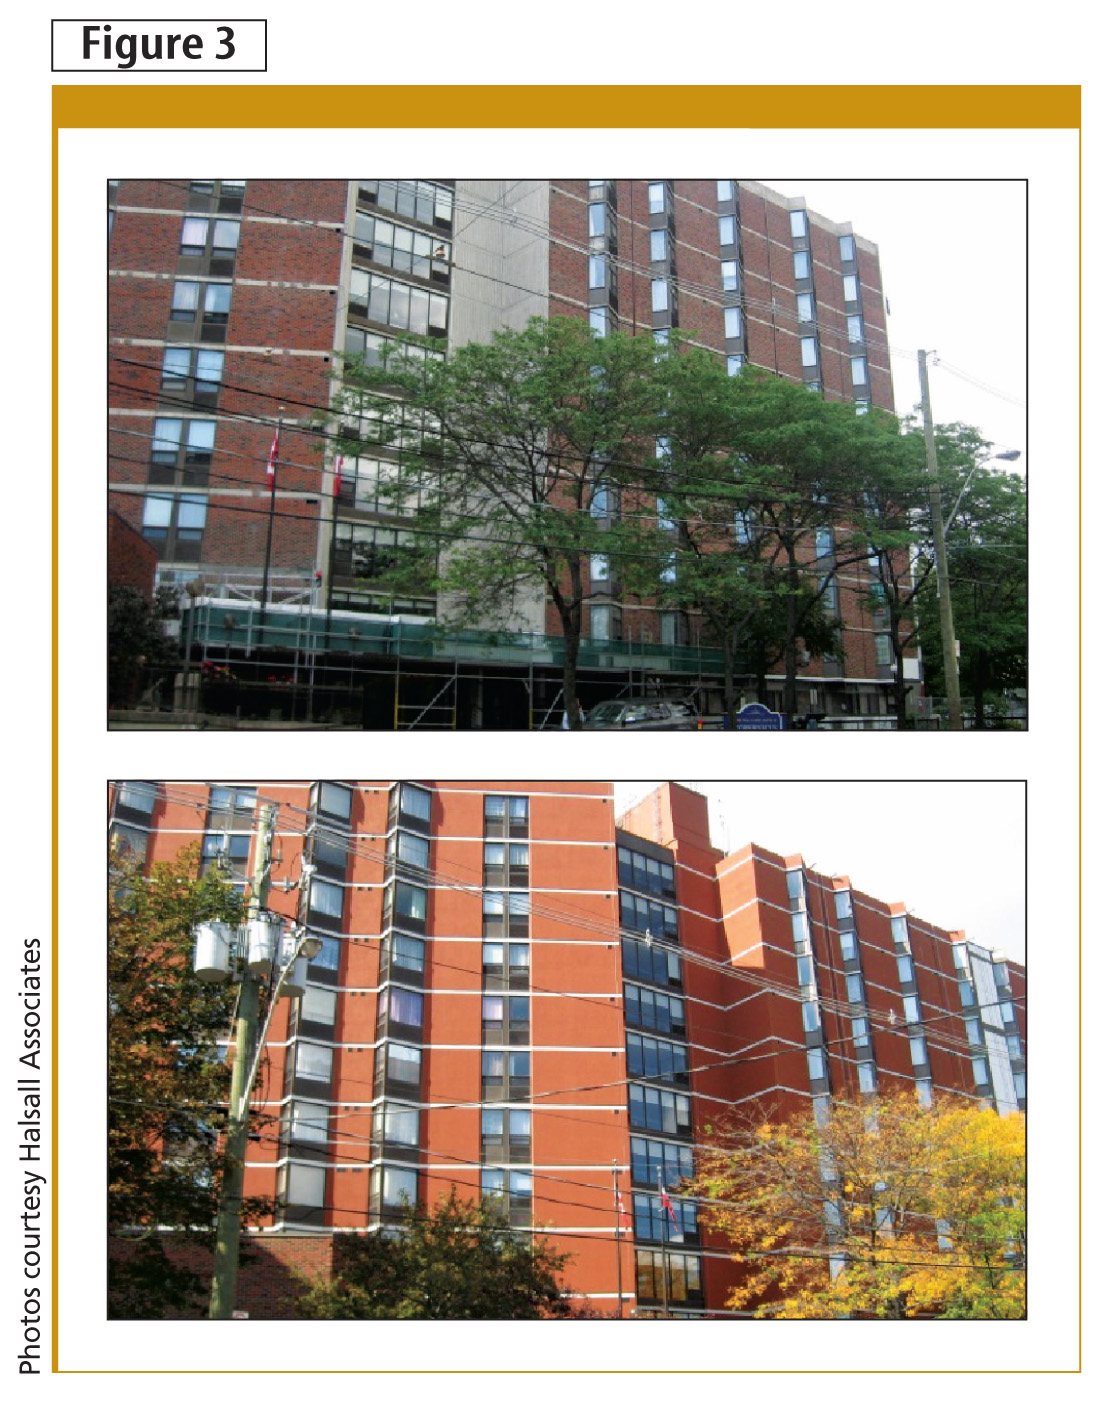 This residential brick-clad building in Toronto (top) was over-clad with exterior insulation and fi nishing systems (EIFS), as shown on the bottom. The fi nish coat was designed to mimic the original brick and exposed fl oor slabs. This building does not have heritage designation, so adding insulation on the exterior was feasible and cost-effective.